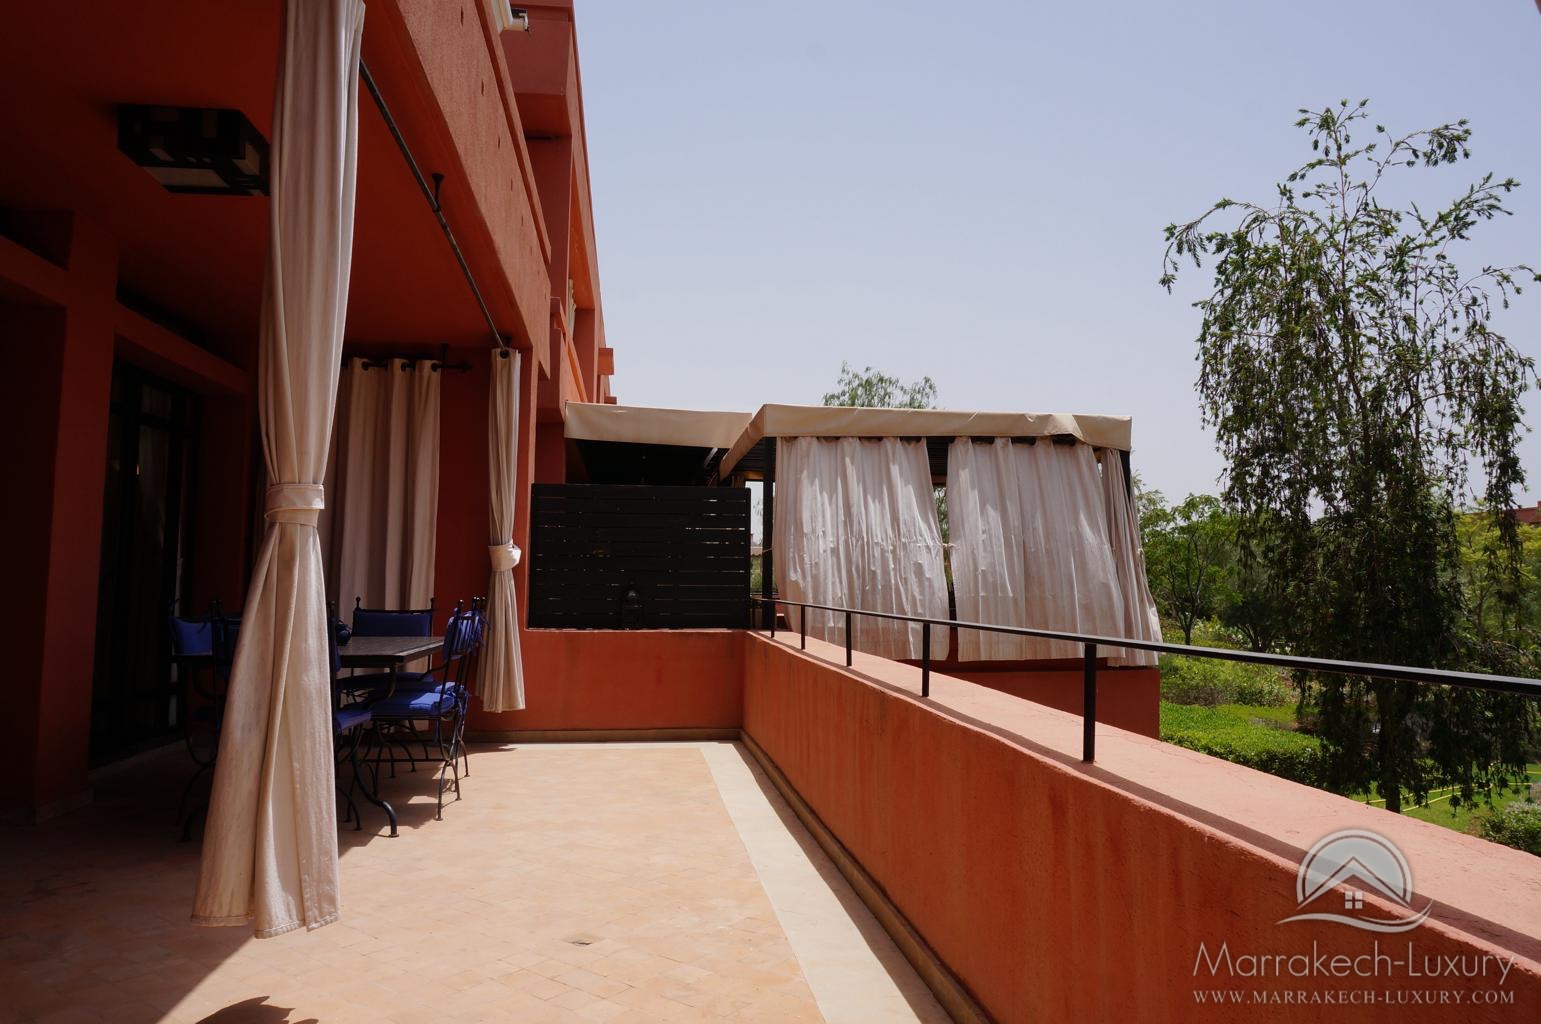 Aptalame1001 59 agence immobili re marrakech acheter for Agence immobiliere 59